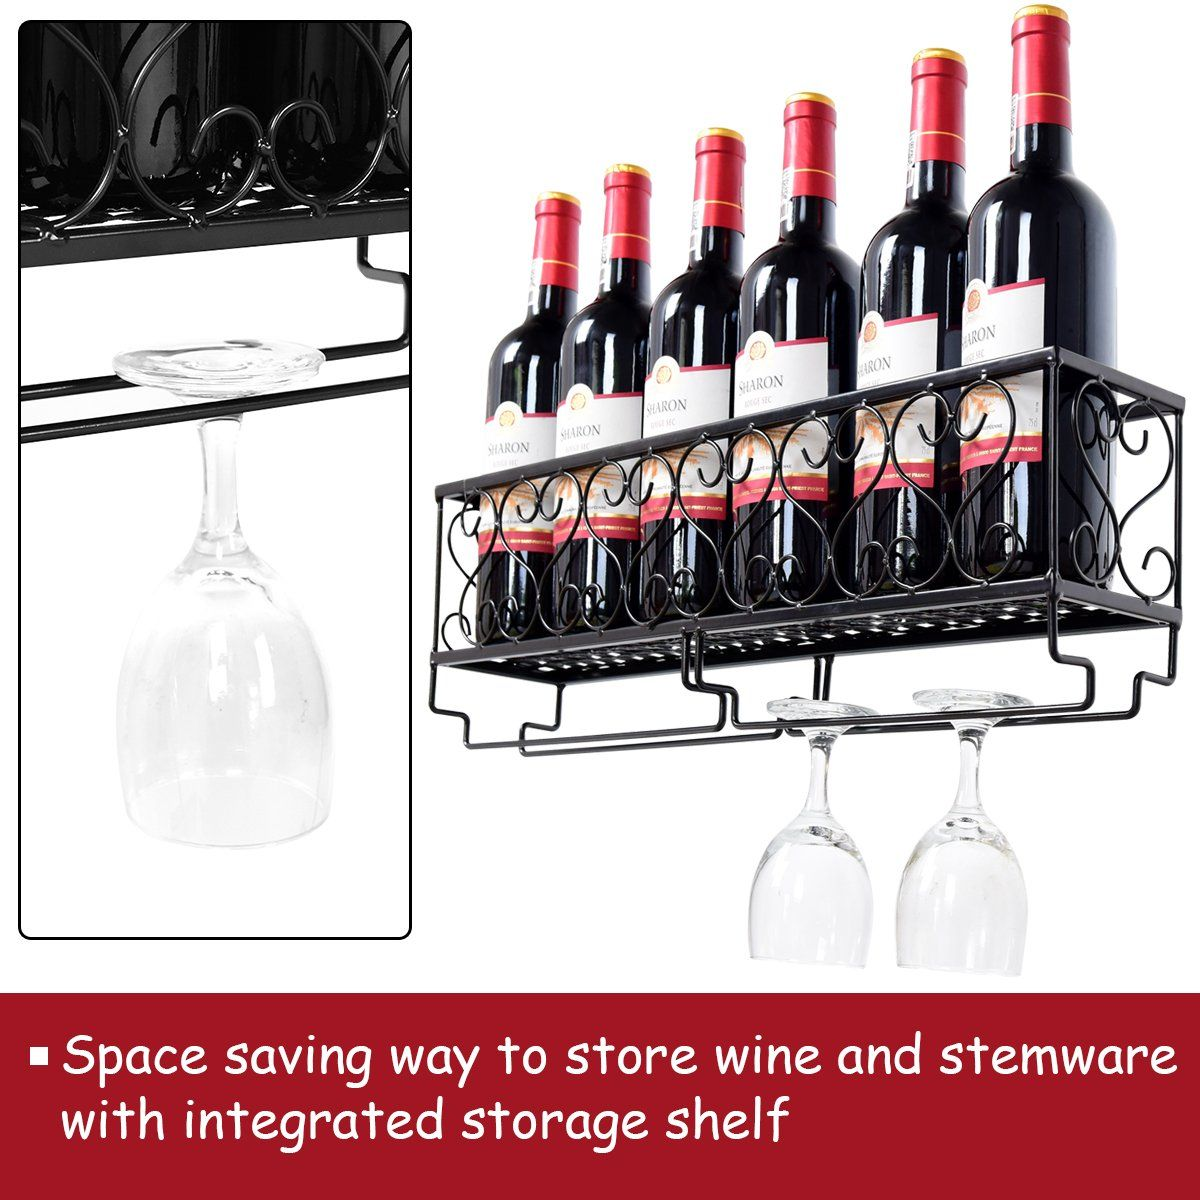 Decorative Metal Wine Racks Giantex Wall Mounted Wine Rack Metal Wine Bottle Shelf W Glass